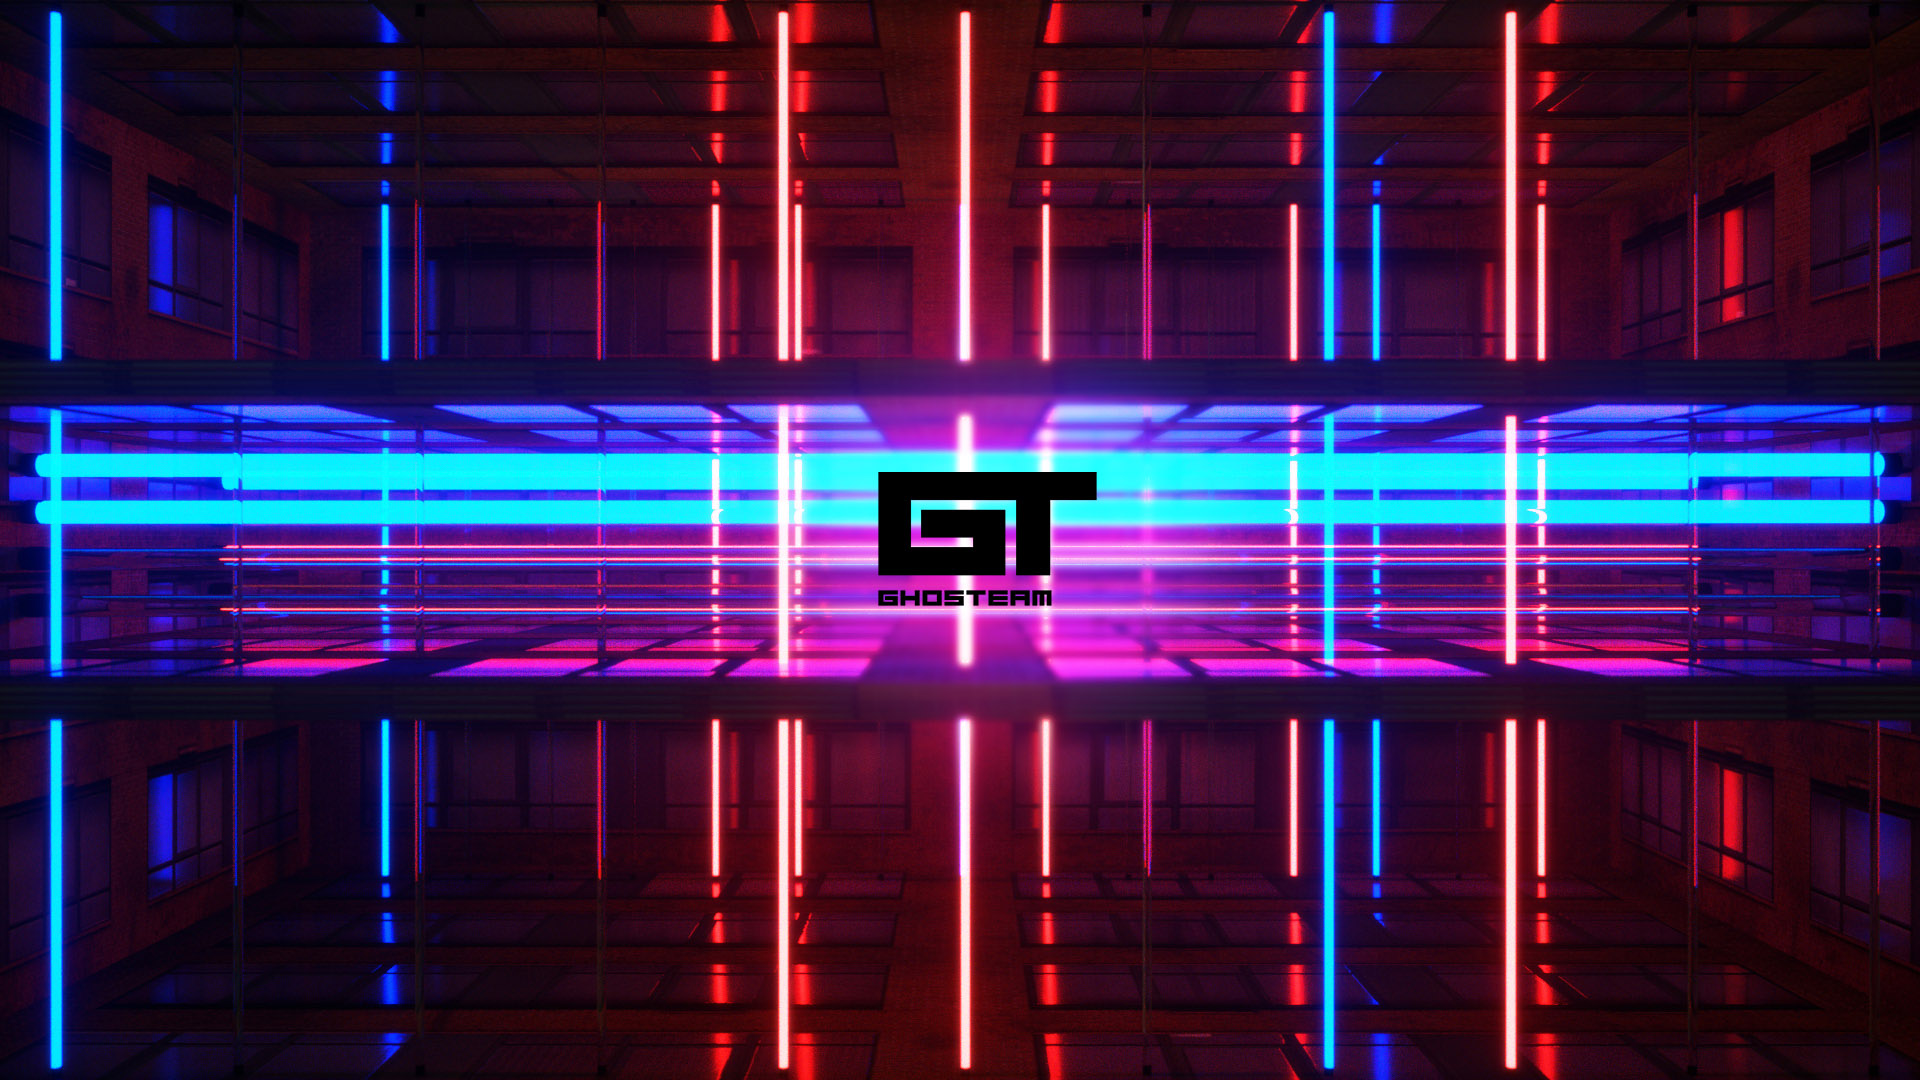 Resolume Archives Ghosteam VJ Loops Video Templates